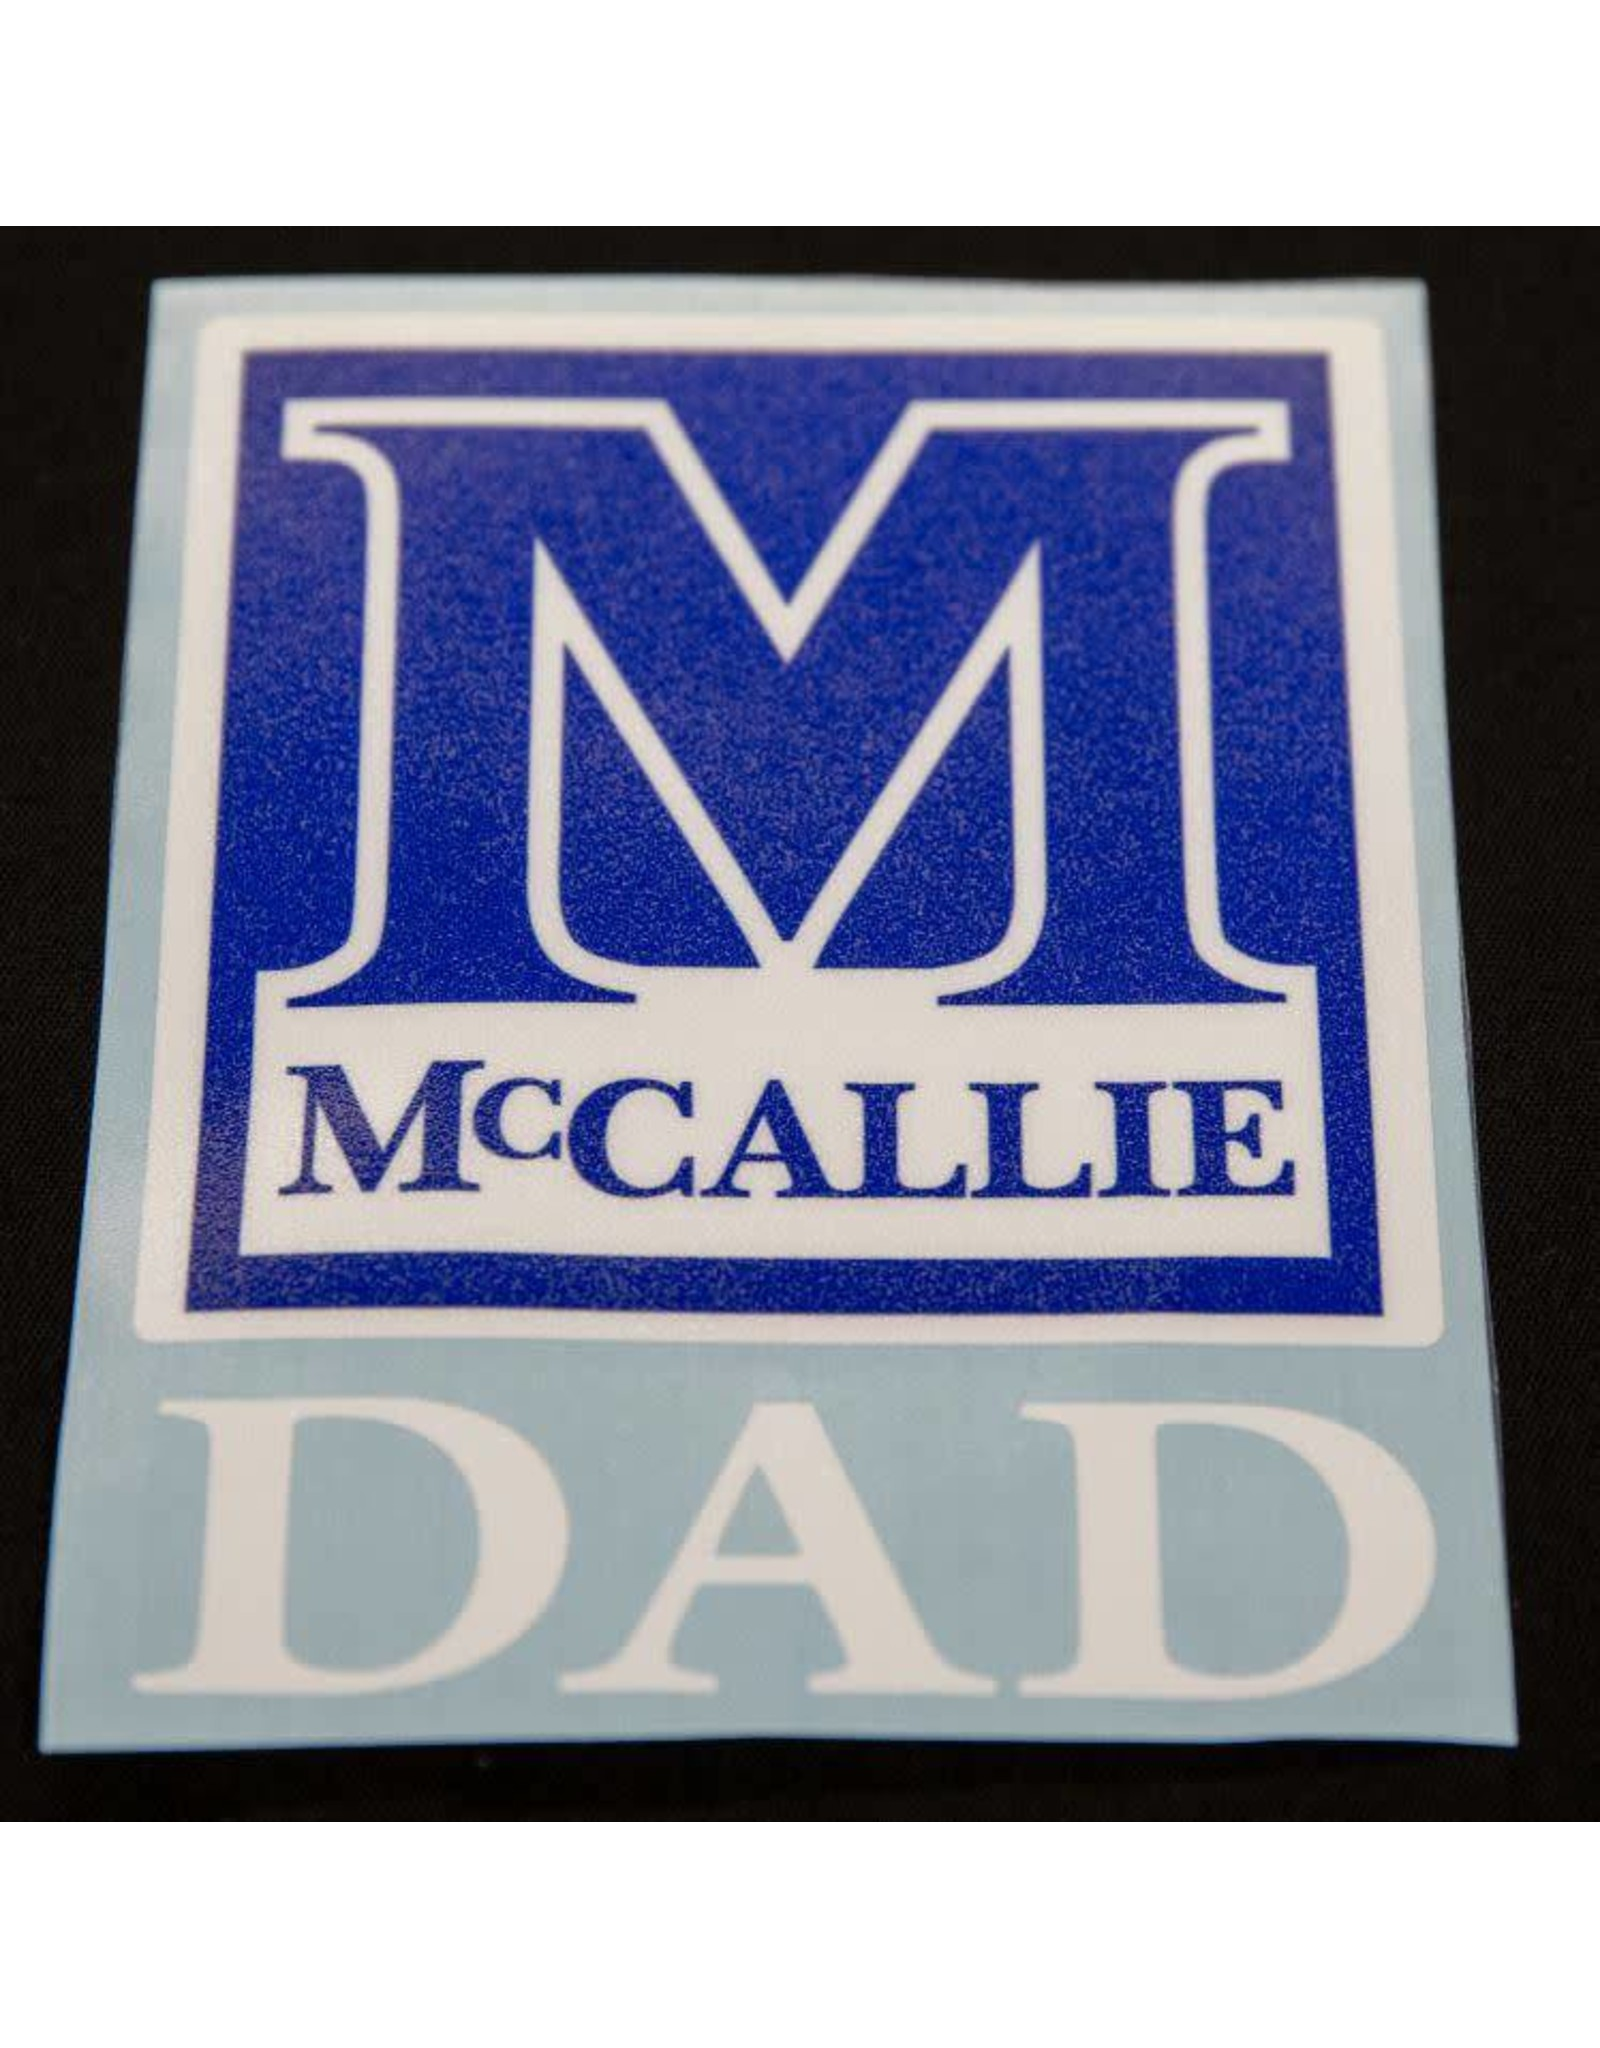 MCCALLIE DAD DECAL